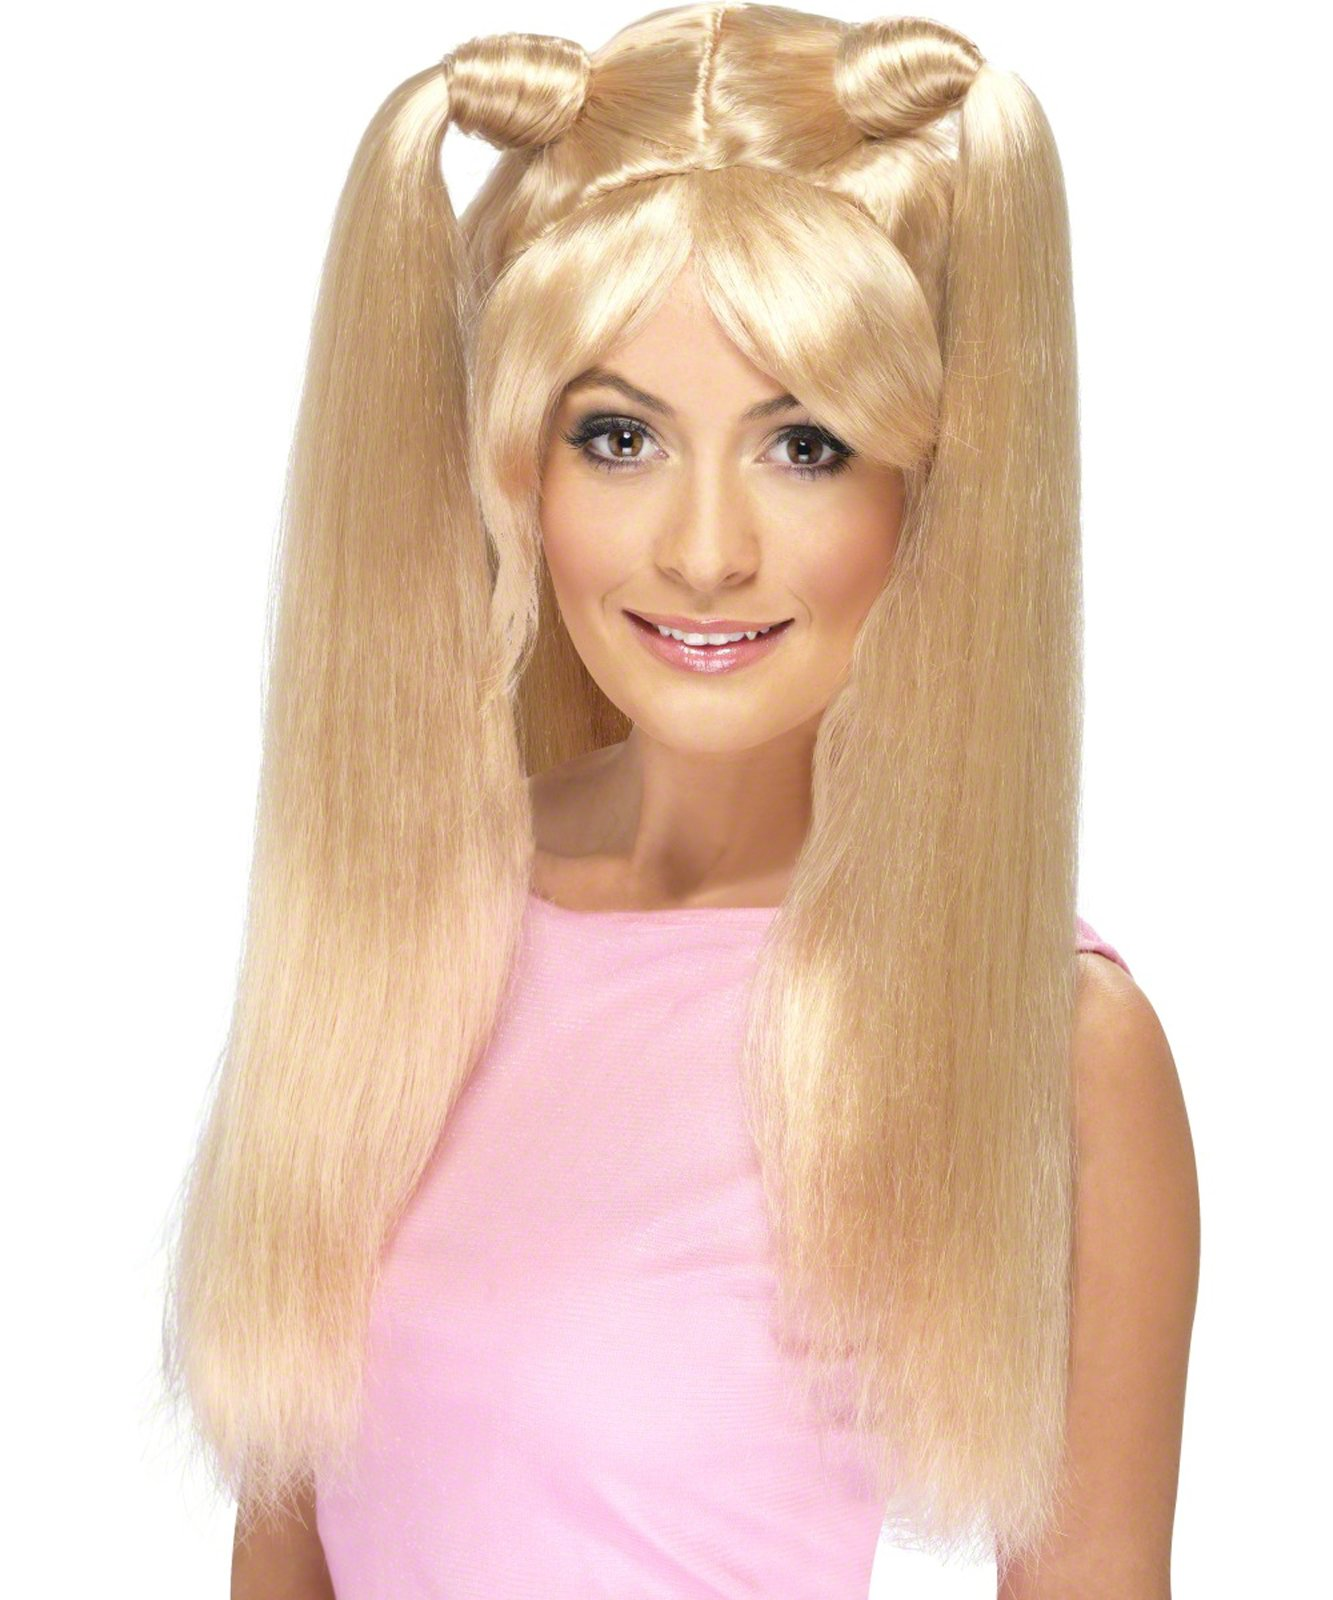 Baby Power Blonde Adult Wig